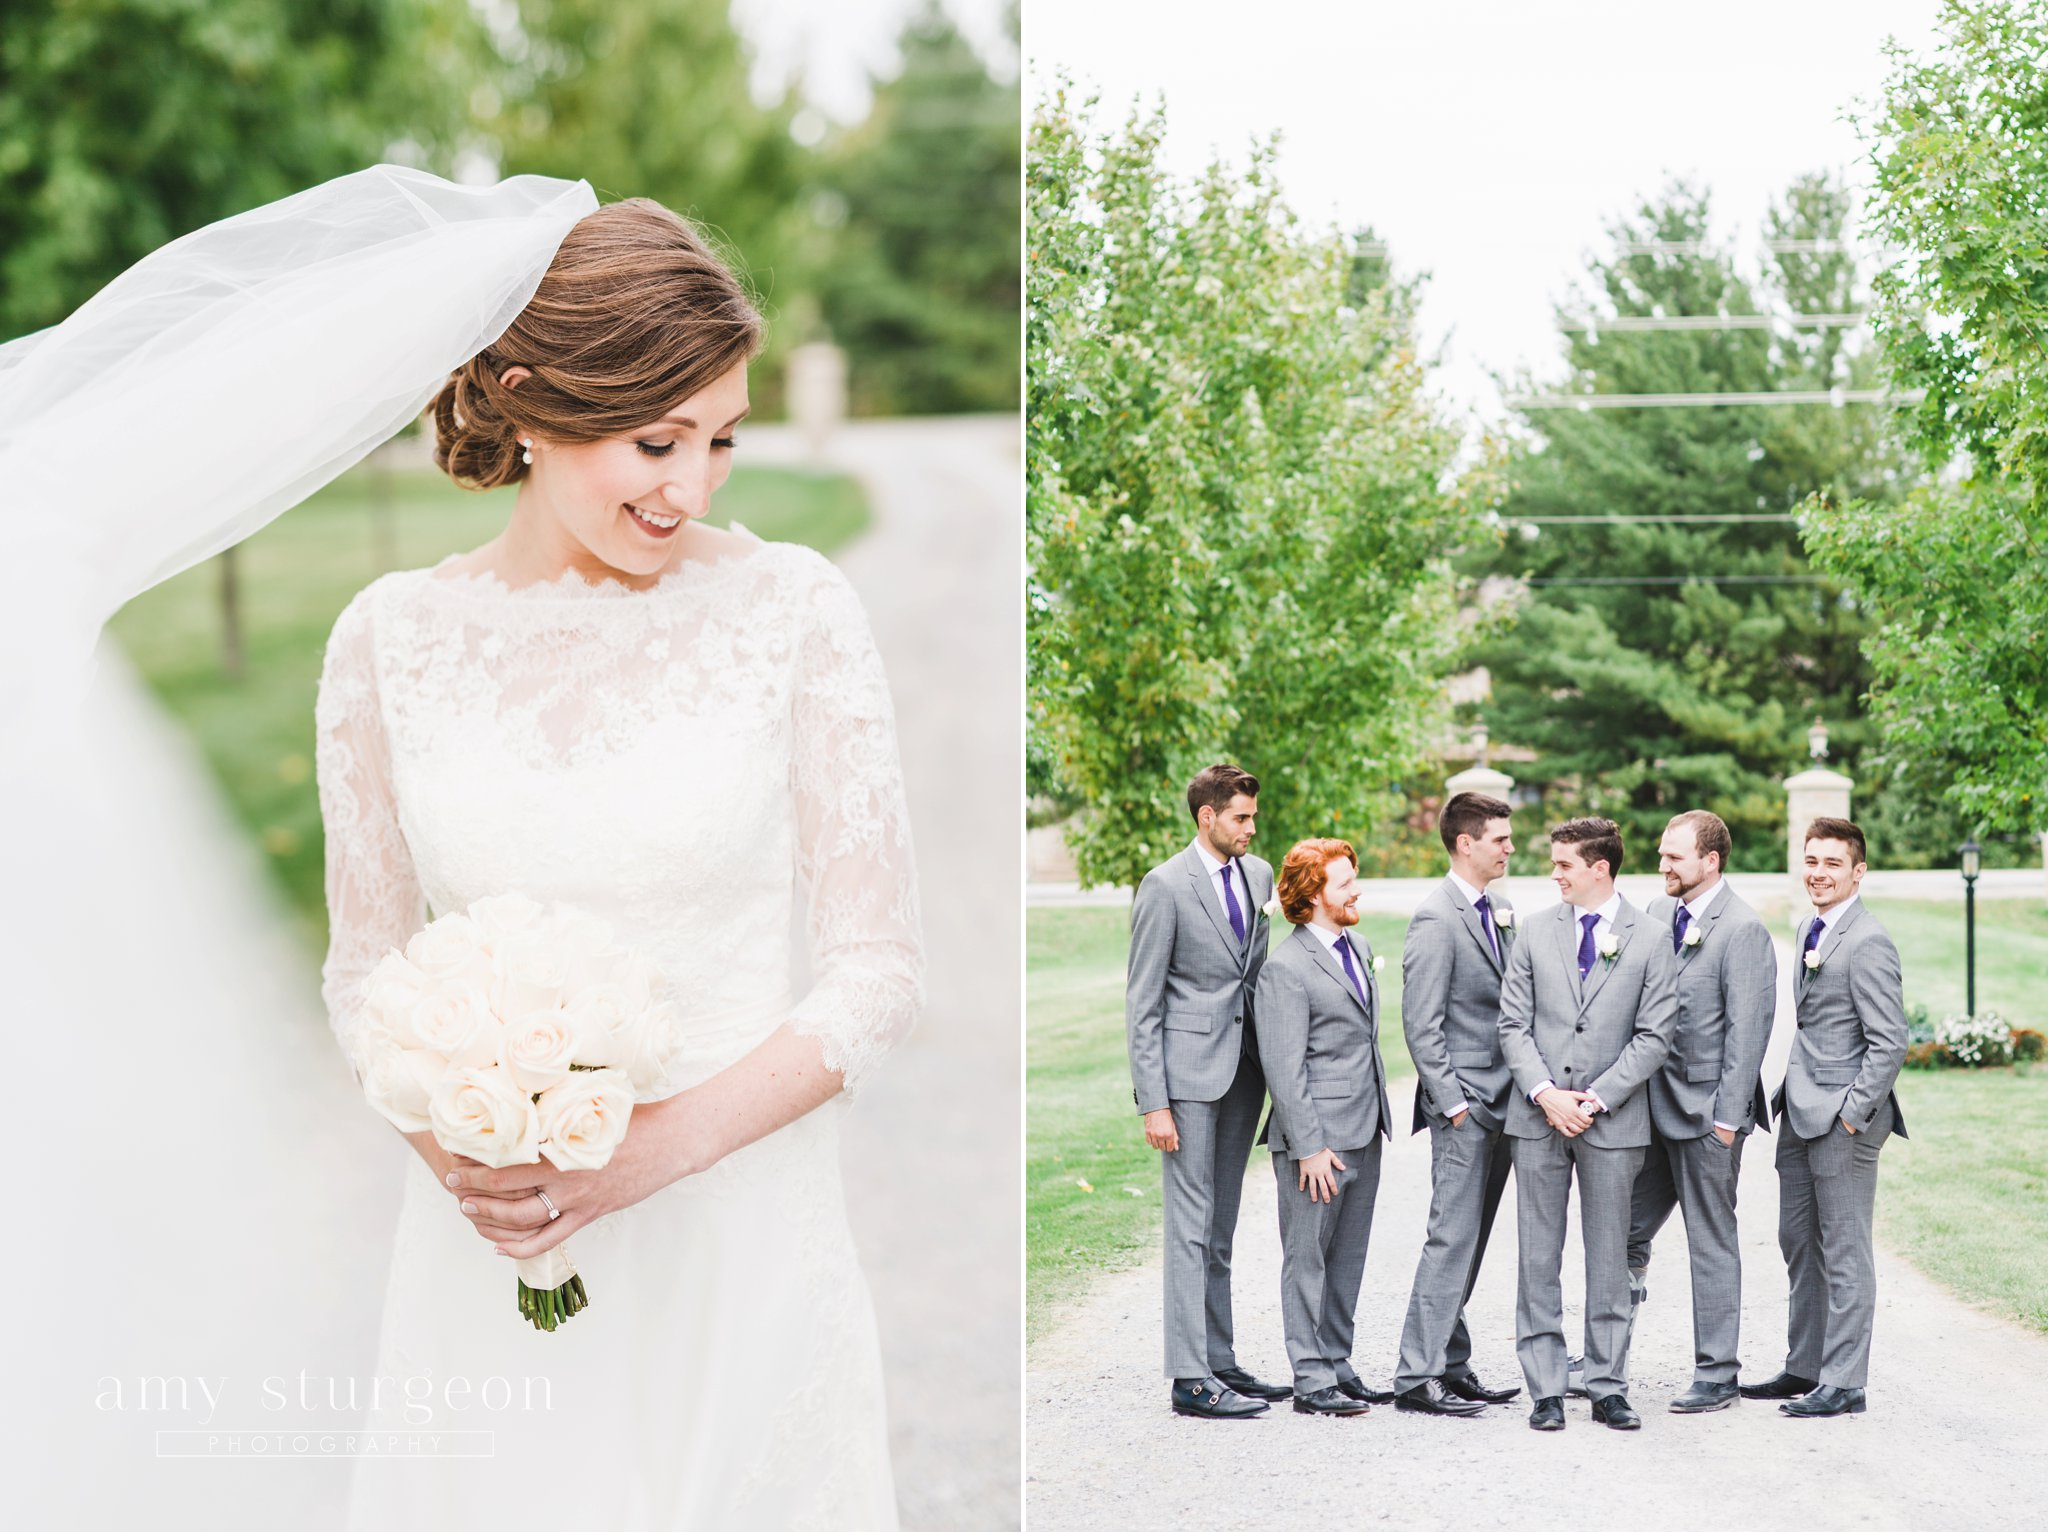 The most beautiful cathedral veil you've ever seen at the alpaca farm wedding